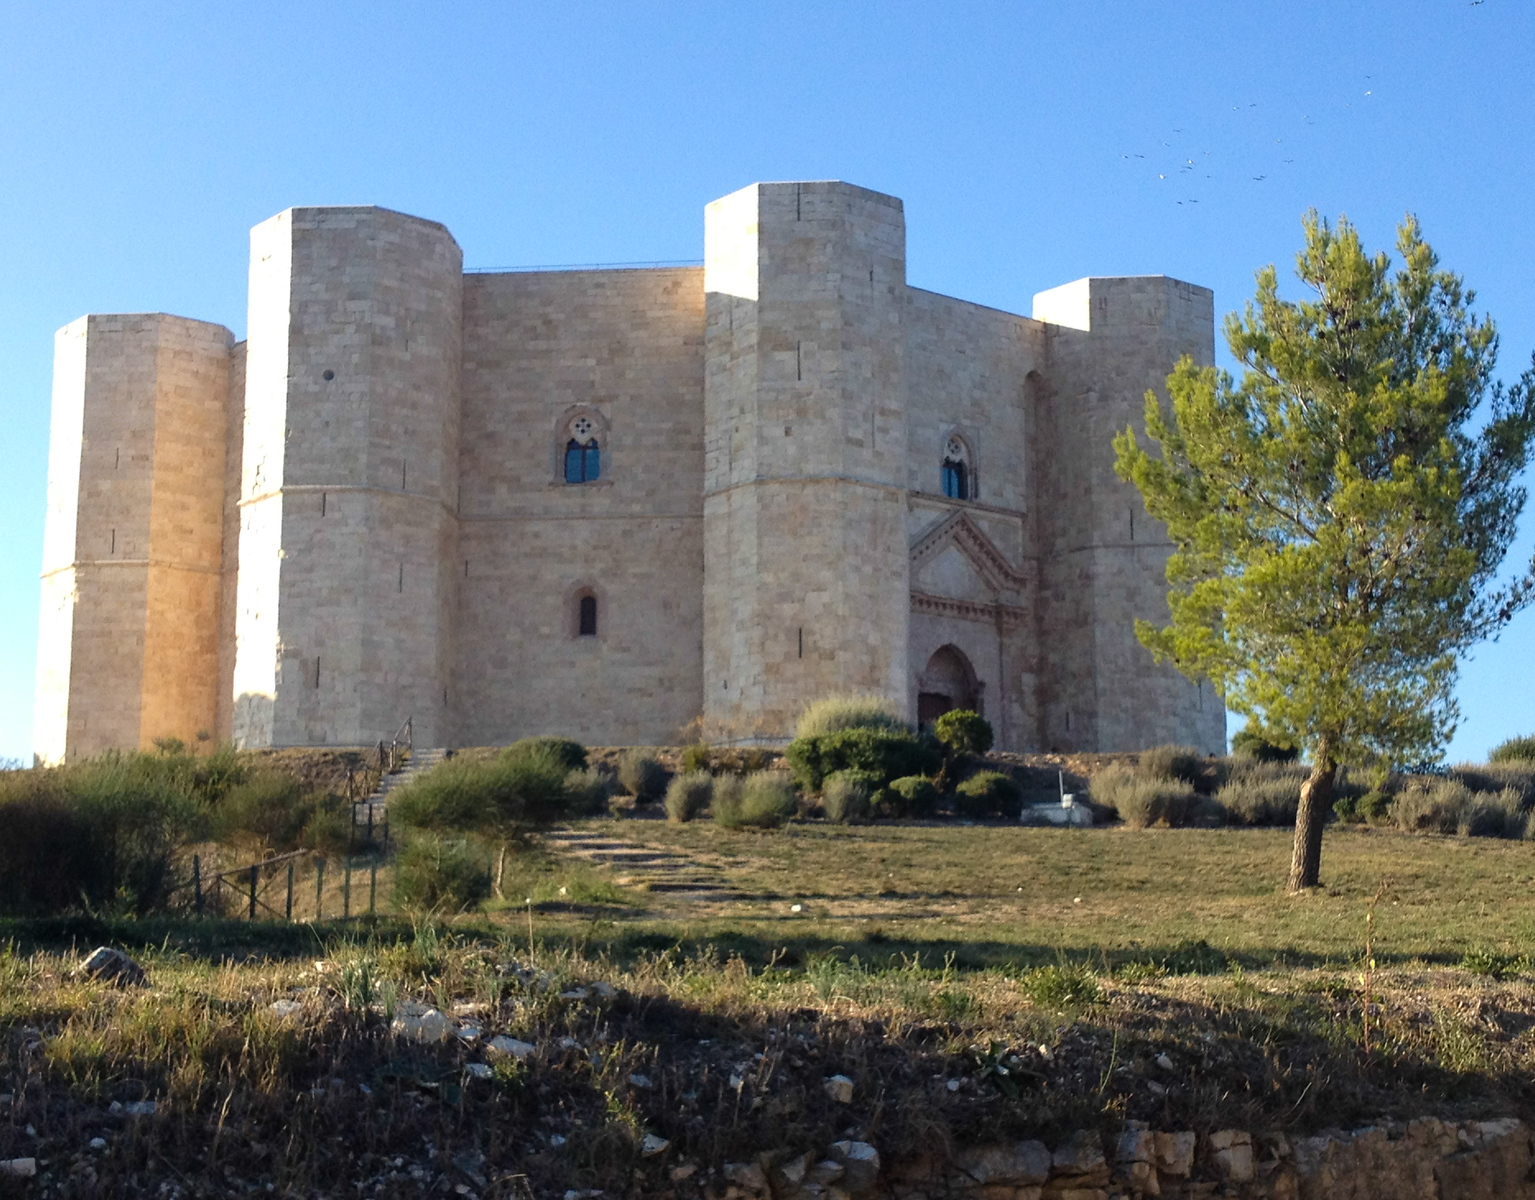 Castel del Monte makes a fun side trip when you visit Trani, Italy. Be sure to include it on your boomer vacation in Italy. #boomertravel #Italy #castle